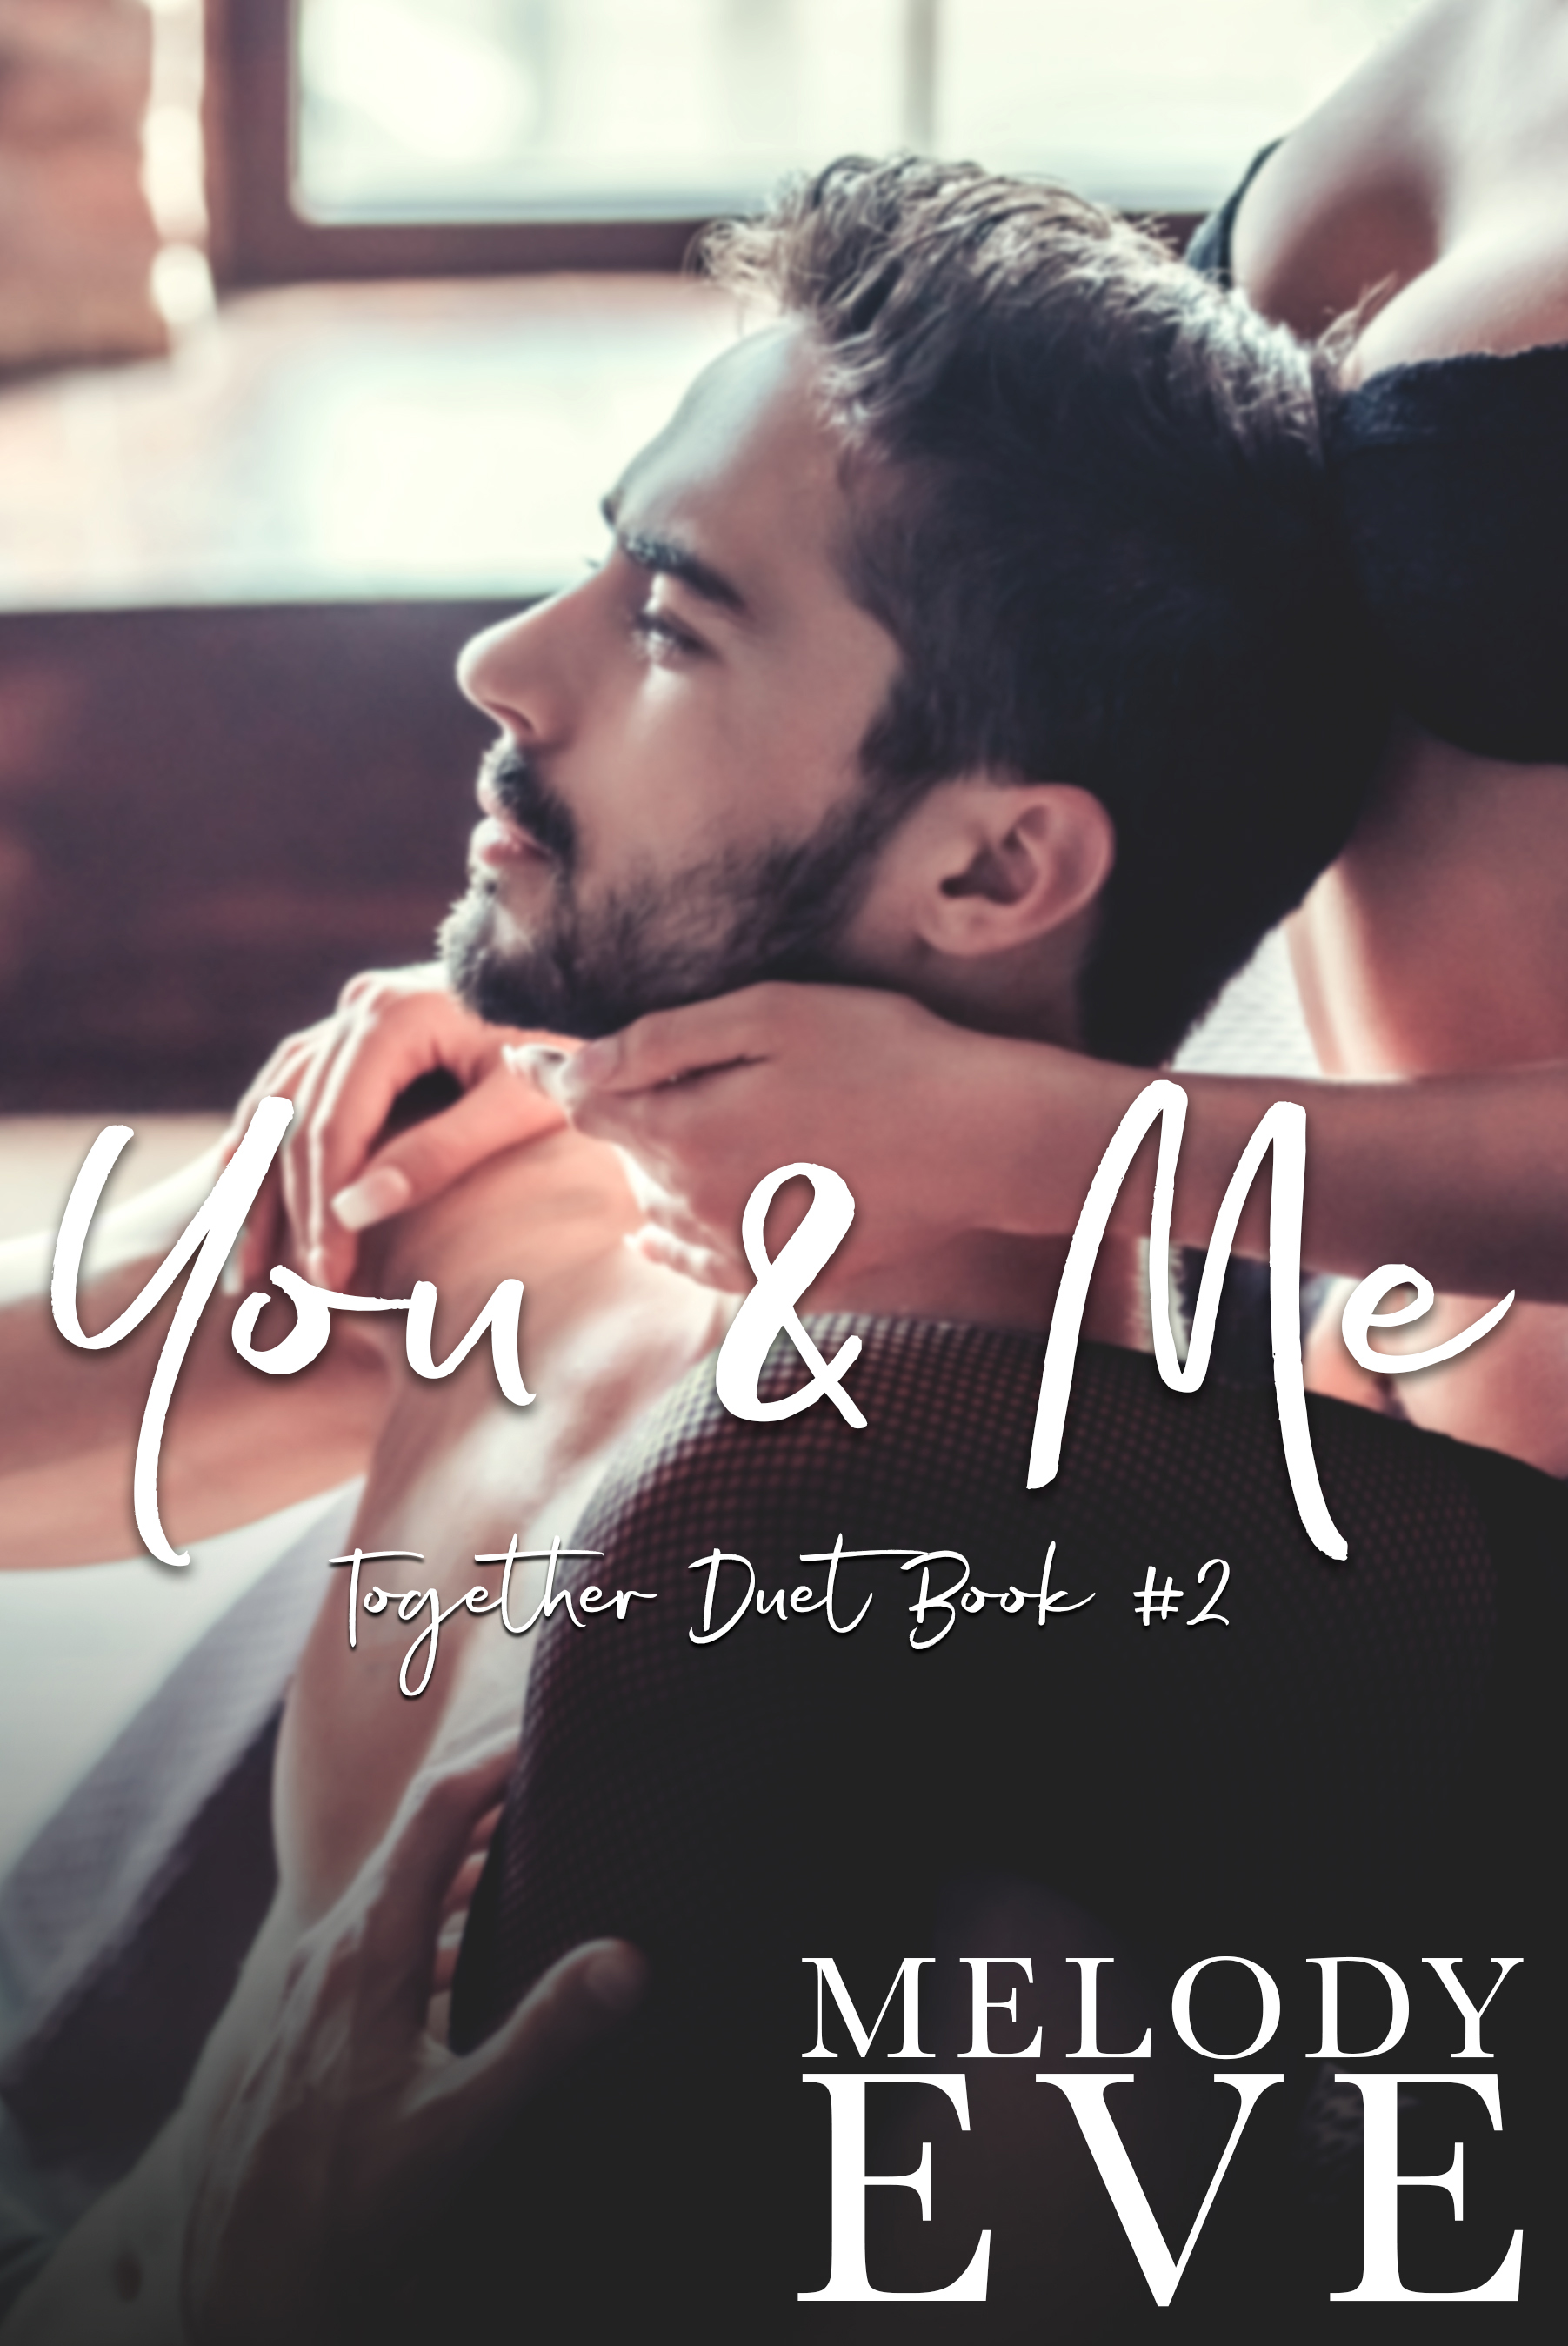 Eve - You & Me